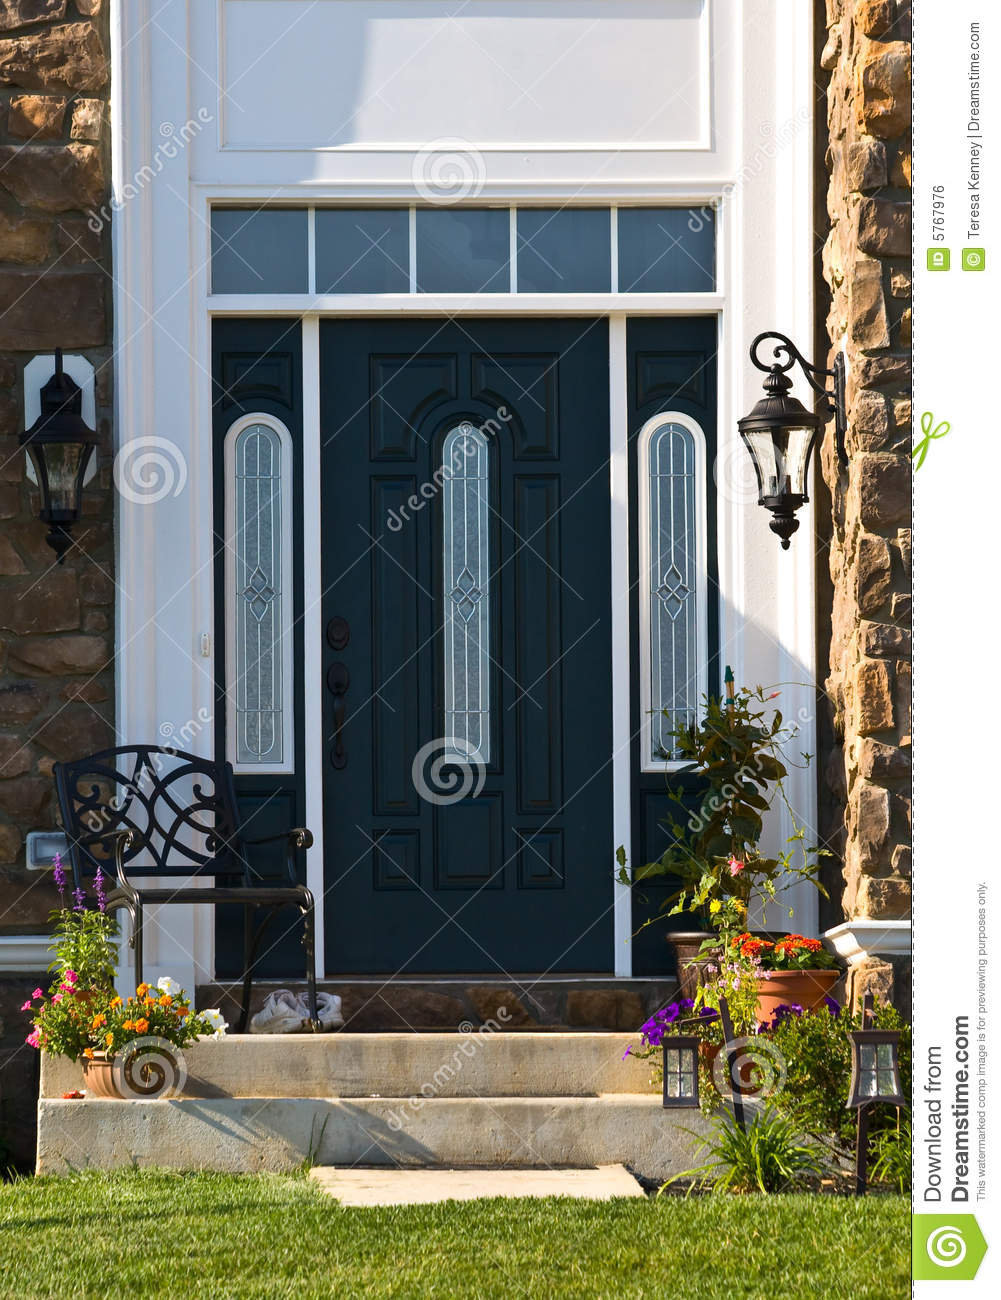 Modern Doorway Stock Photo Image Of Plants Front Entranceway